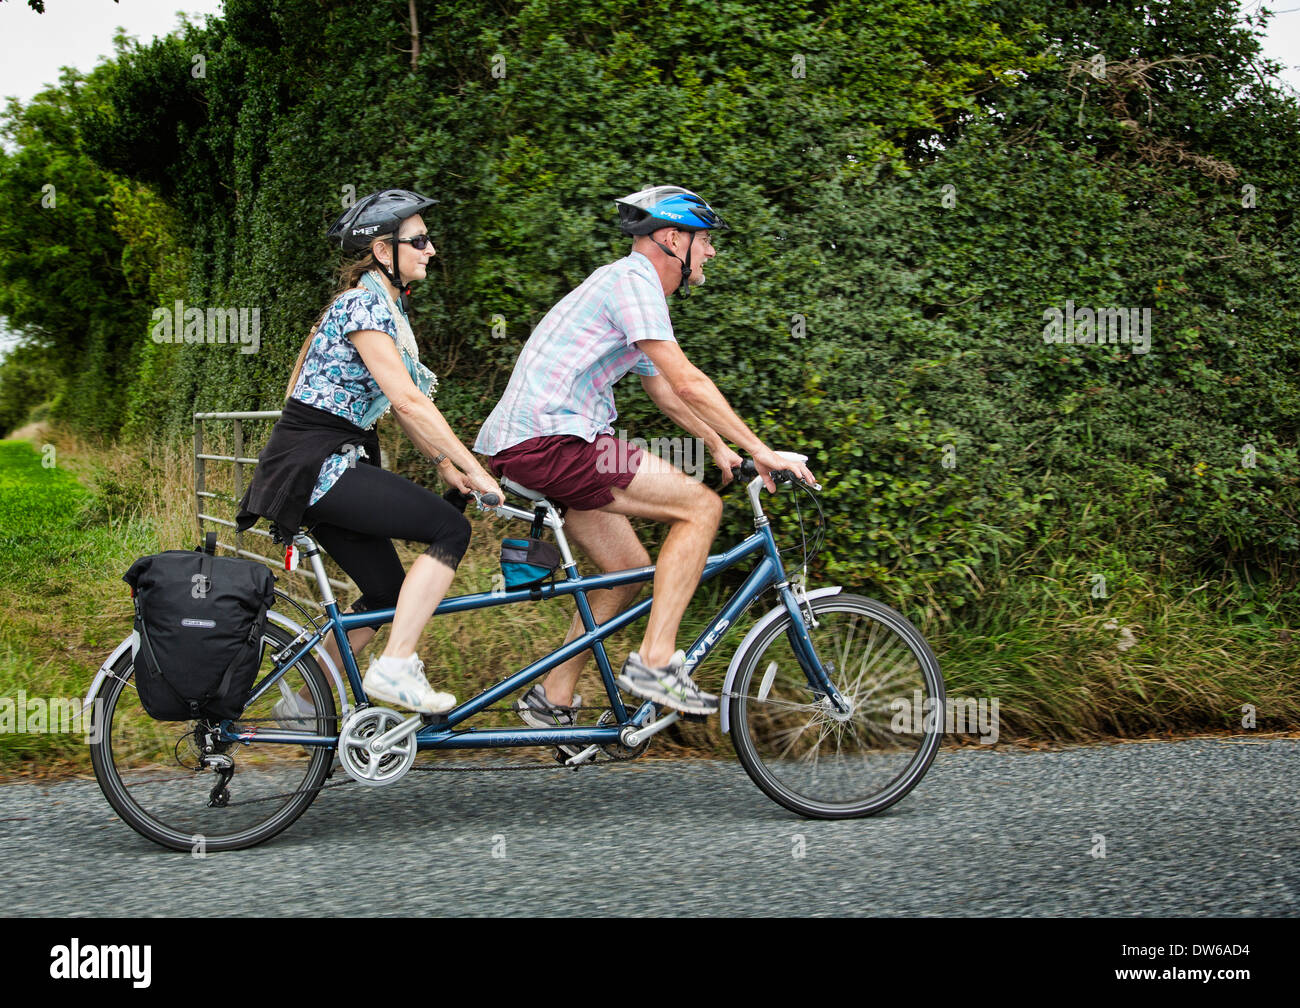 Cycling on tandem bicycle - Stock Image